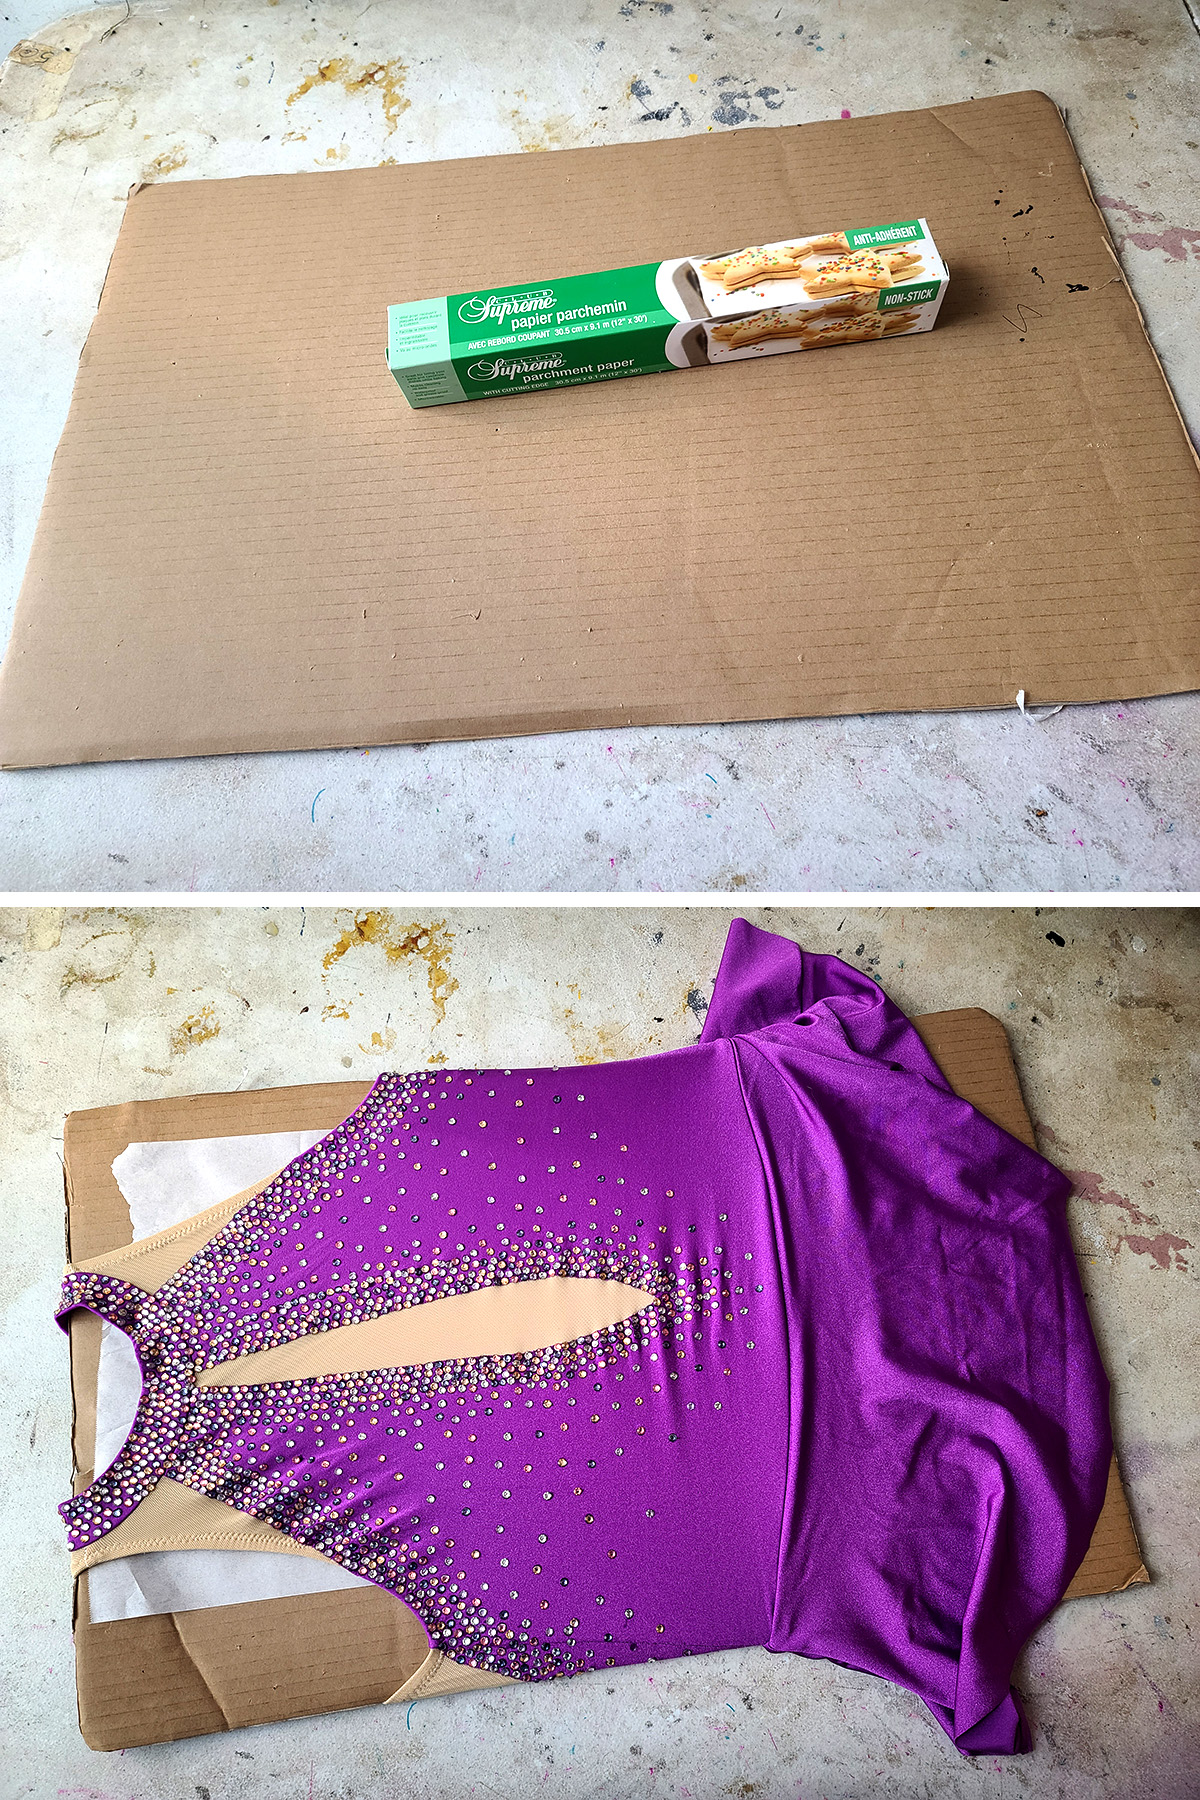 A two part compilation image shows a piece of thick cardboard with a box of parchment paper on top, and then a purple skating dress stretched over the cardboard, with a sheet of parchment paper shown sticking out from between the dress and the board.